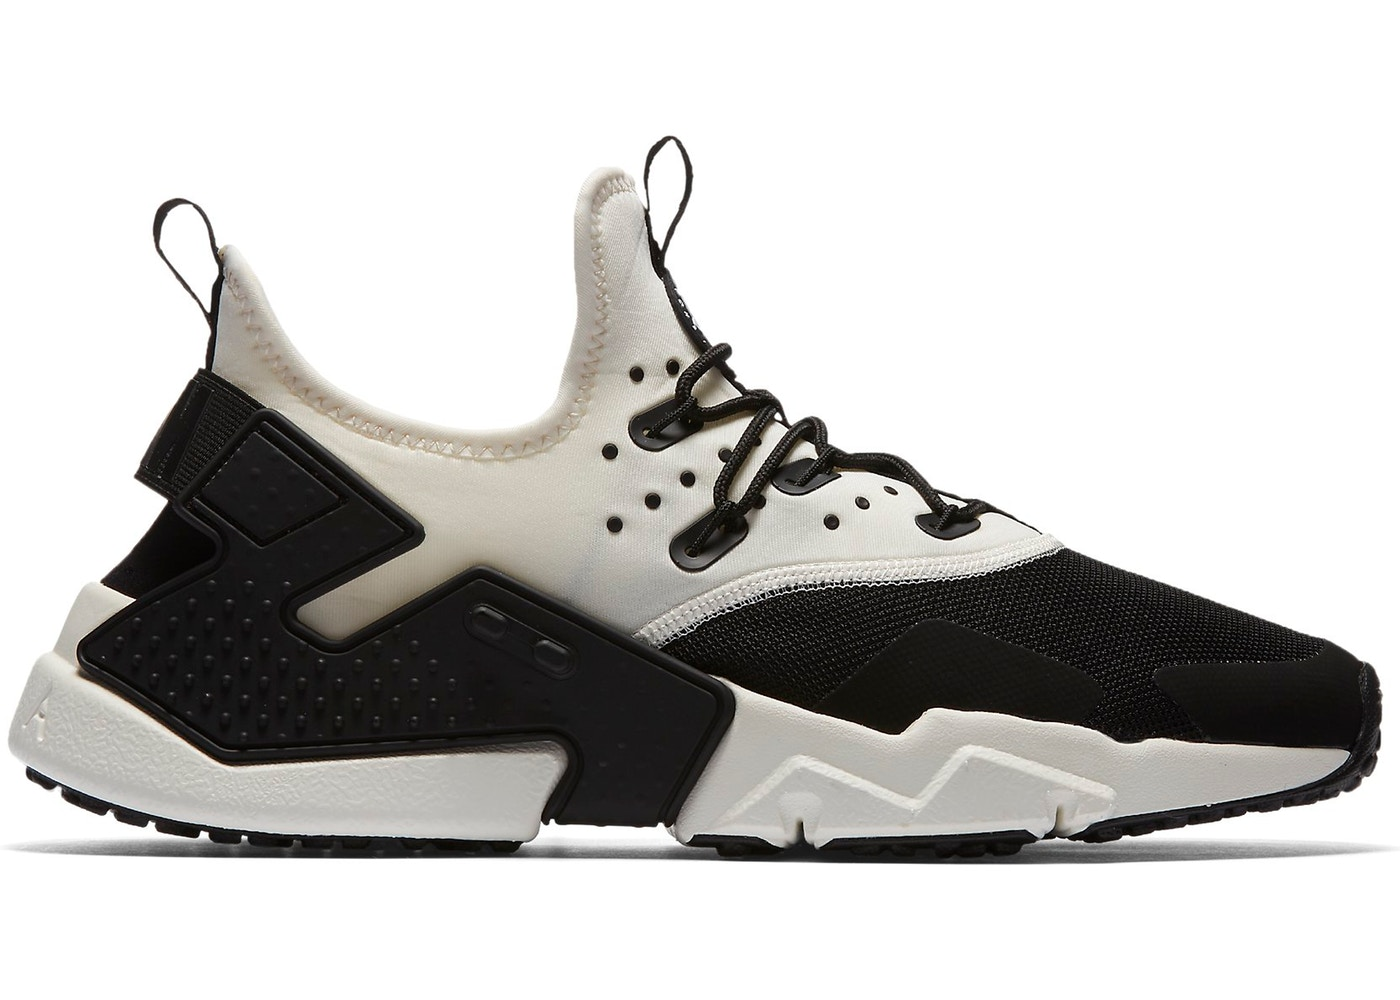 54f11780c5 Air Huarache Drift Black Sail - AH7334-002